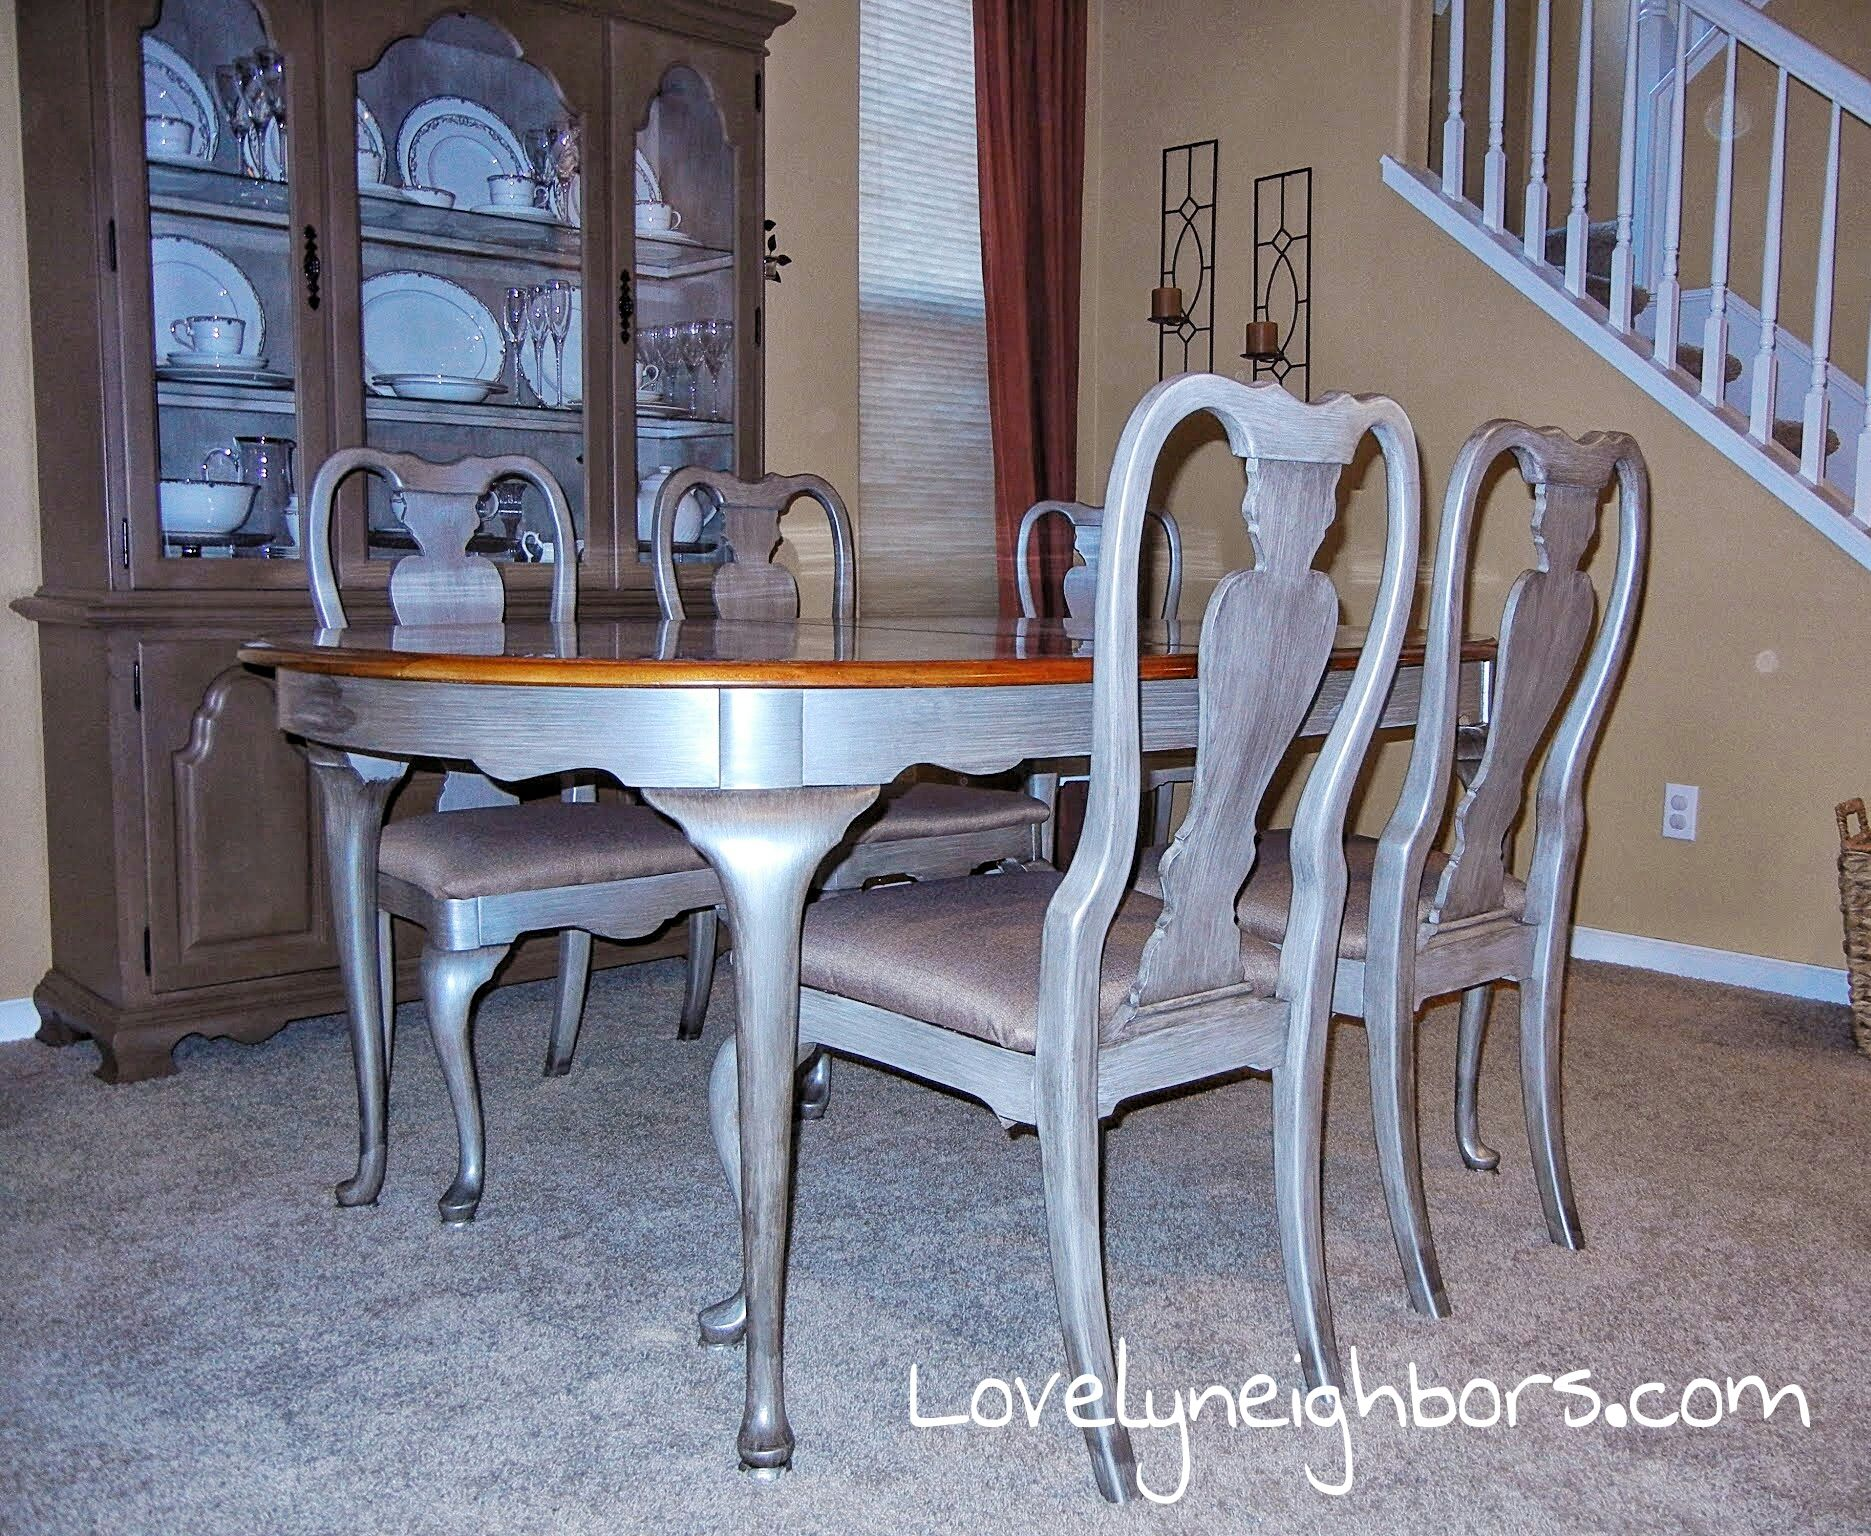 dining table metallic paint google search ob apt pinterest dining table metallic paint google search